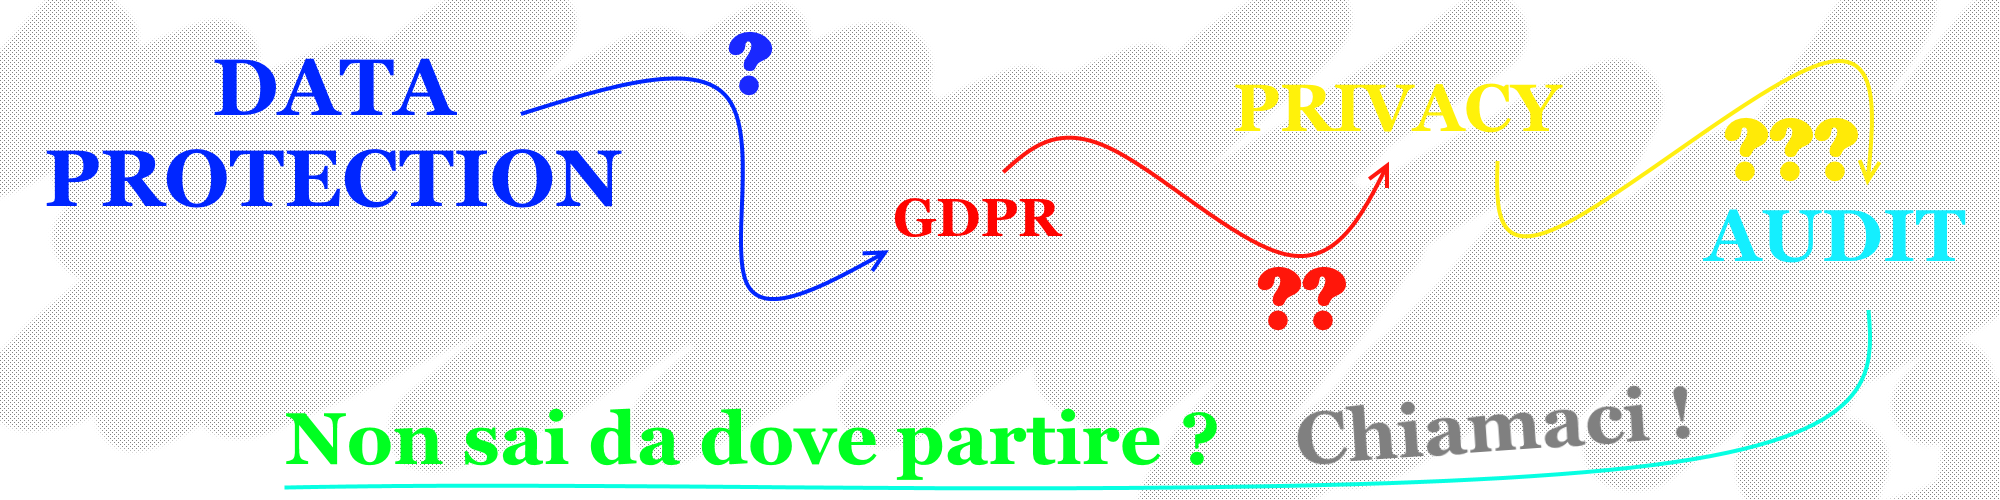 gdpr-immagine1.png